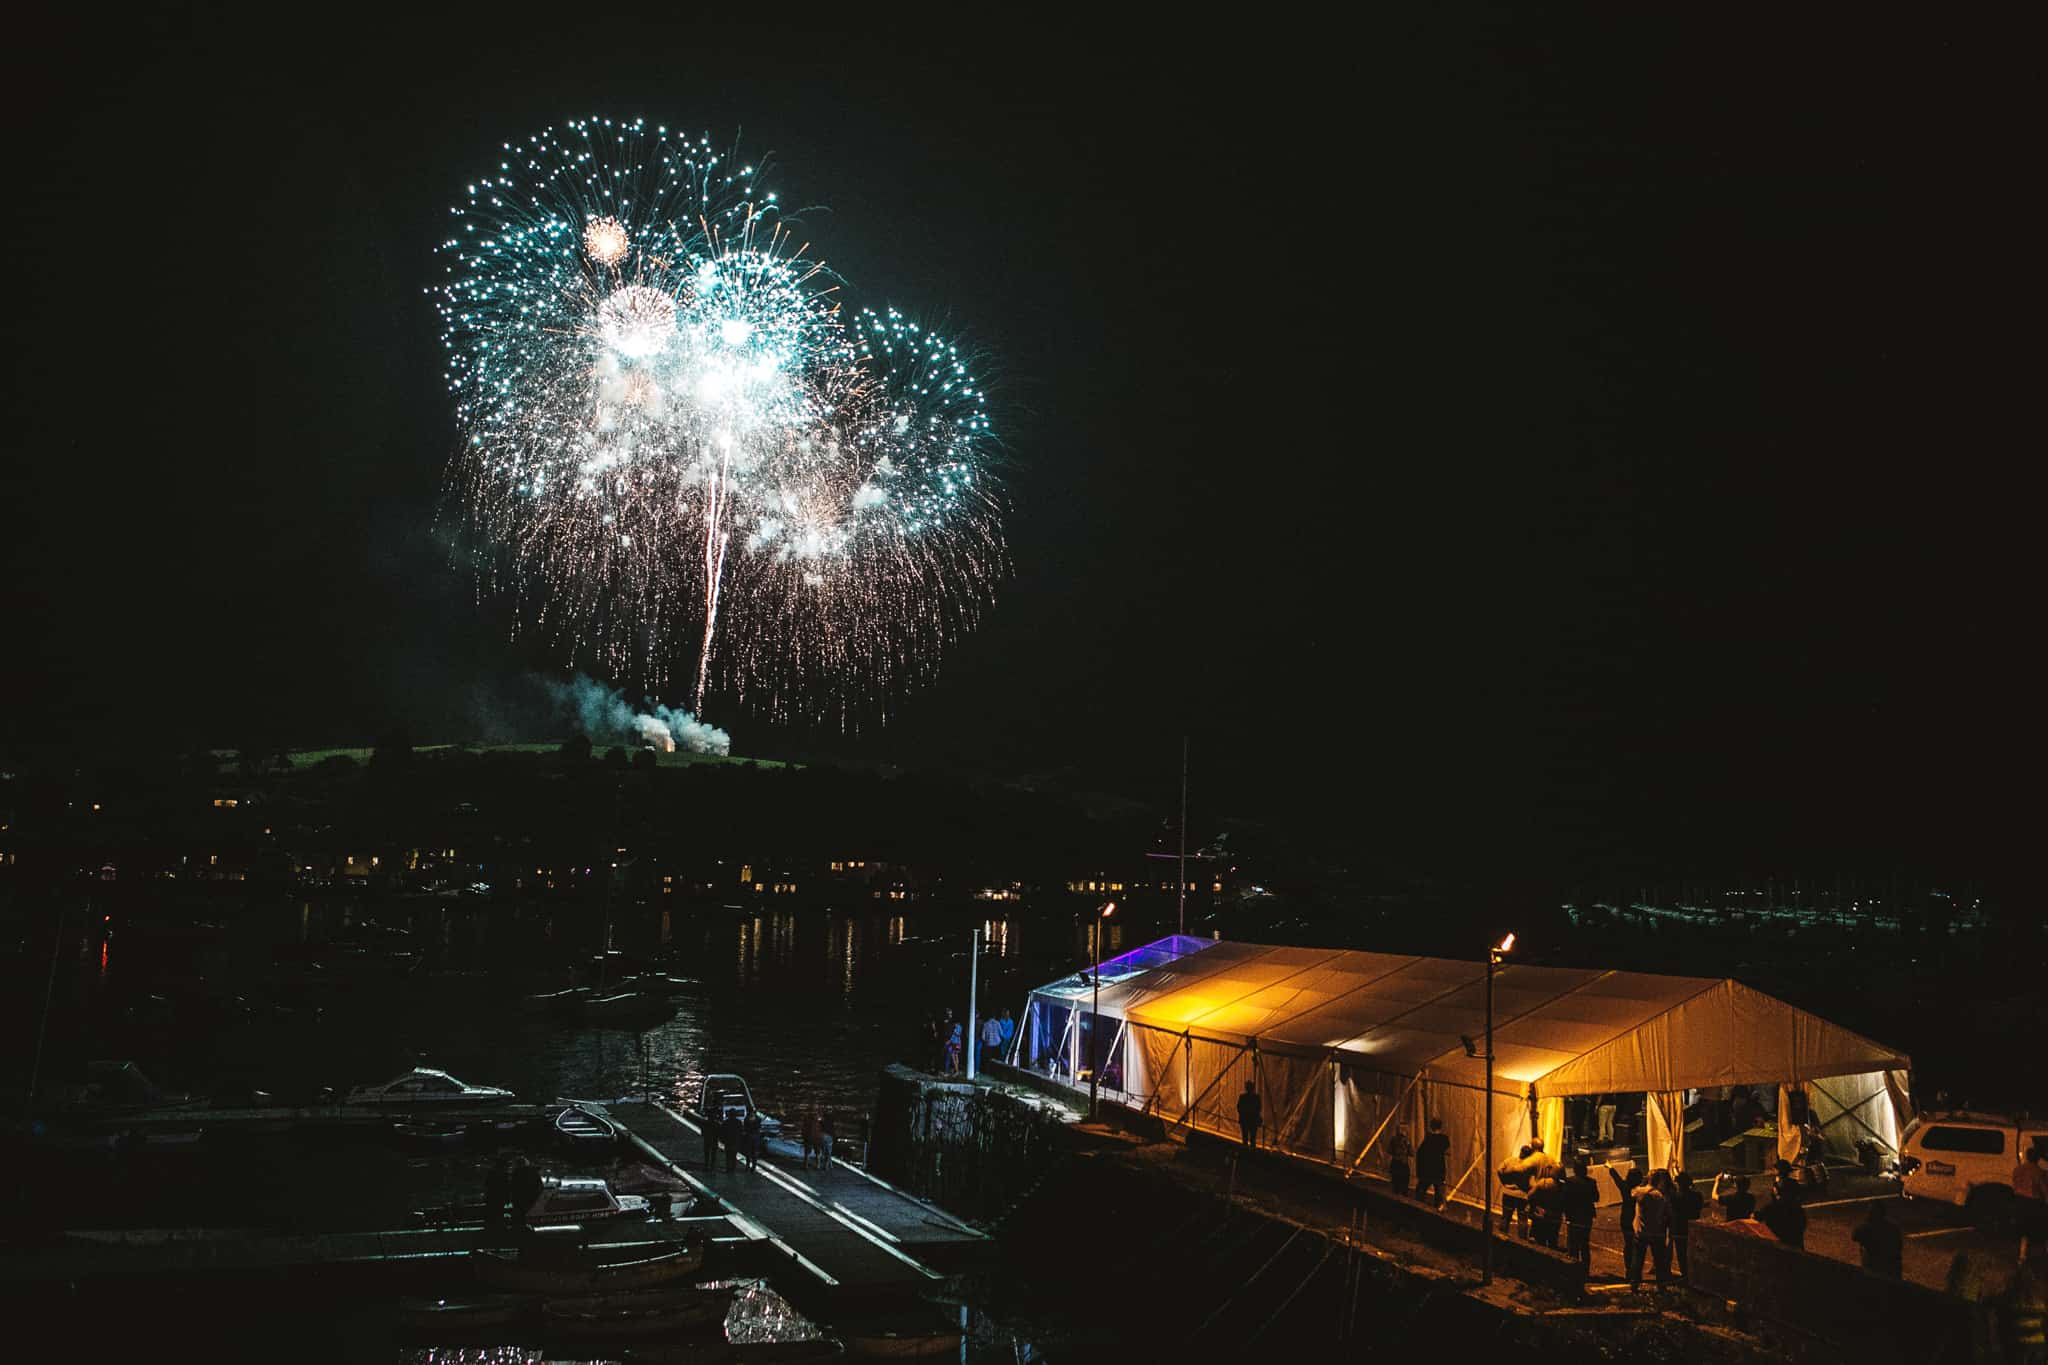 falmouth-week-at-the-working-boat-pub-live-music-events-falmouth-cornwall (92 of 114)